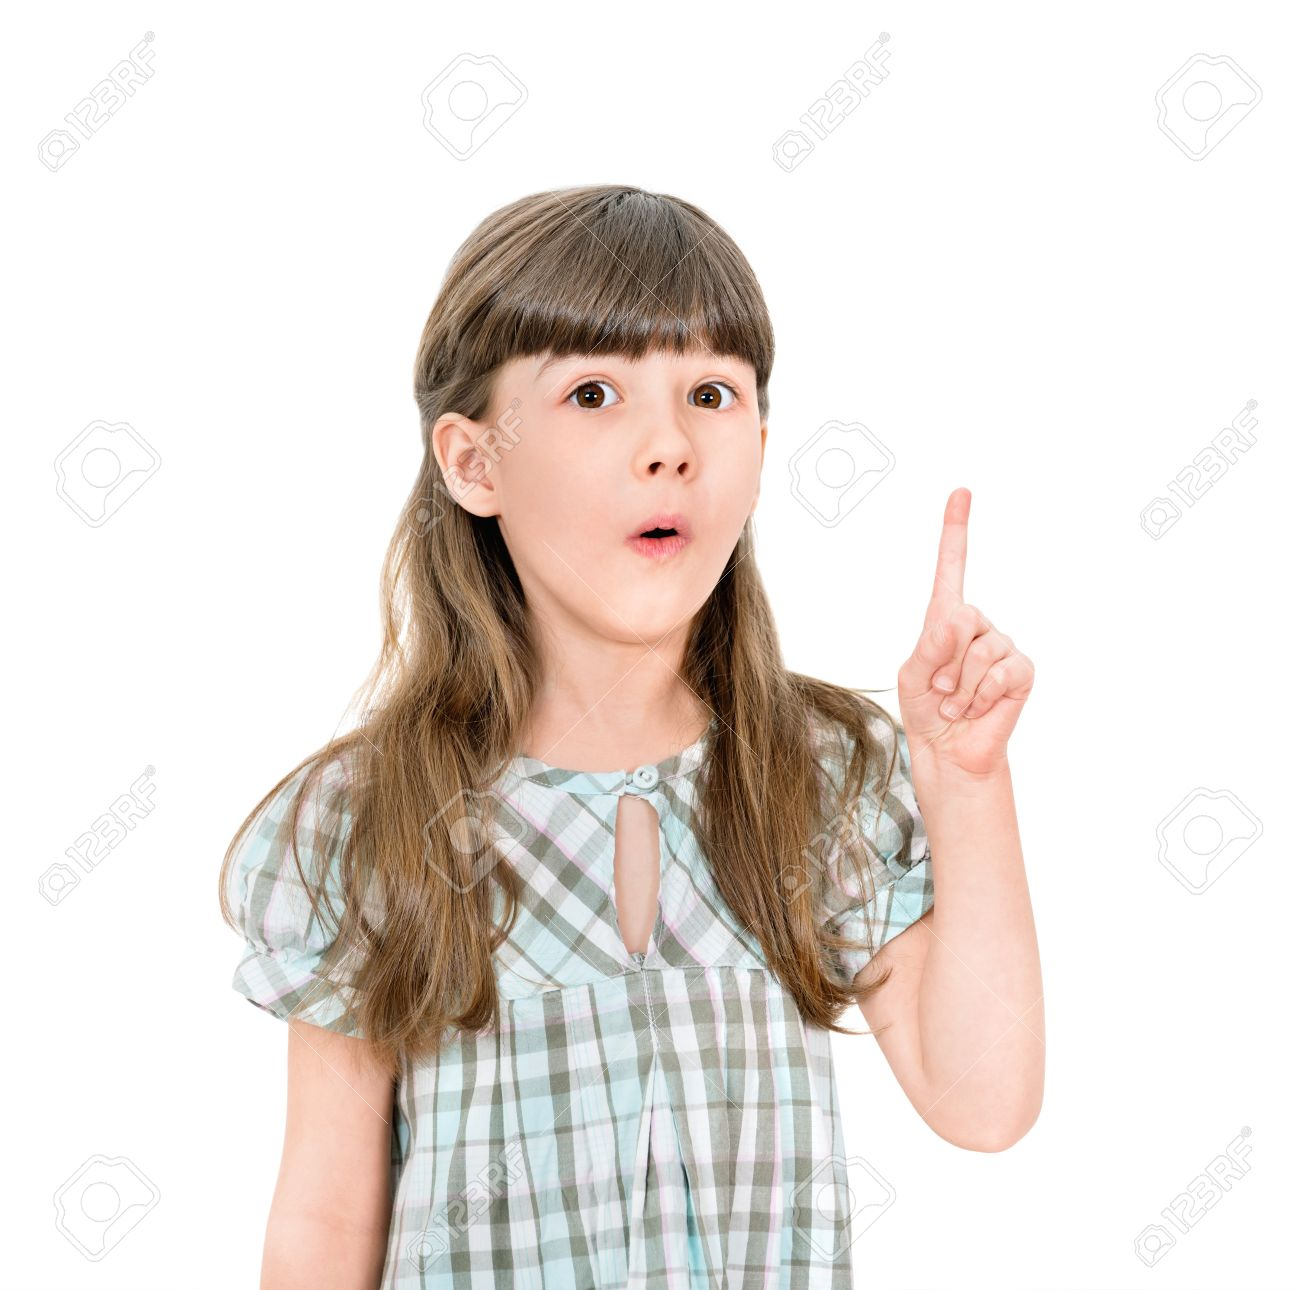 Clever little girl with a bright idea pointing upwards with her finger to gain attention  Isolated on white with blank copyspace above her finger Stock Photo - 18459815